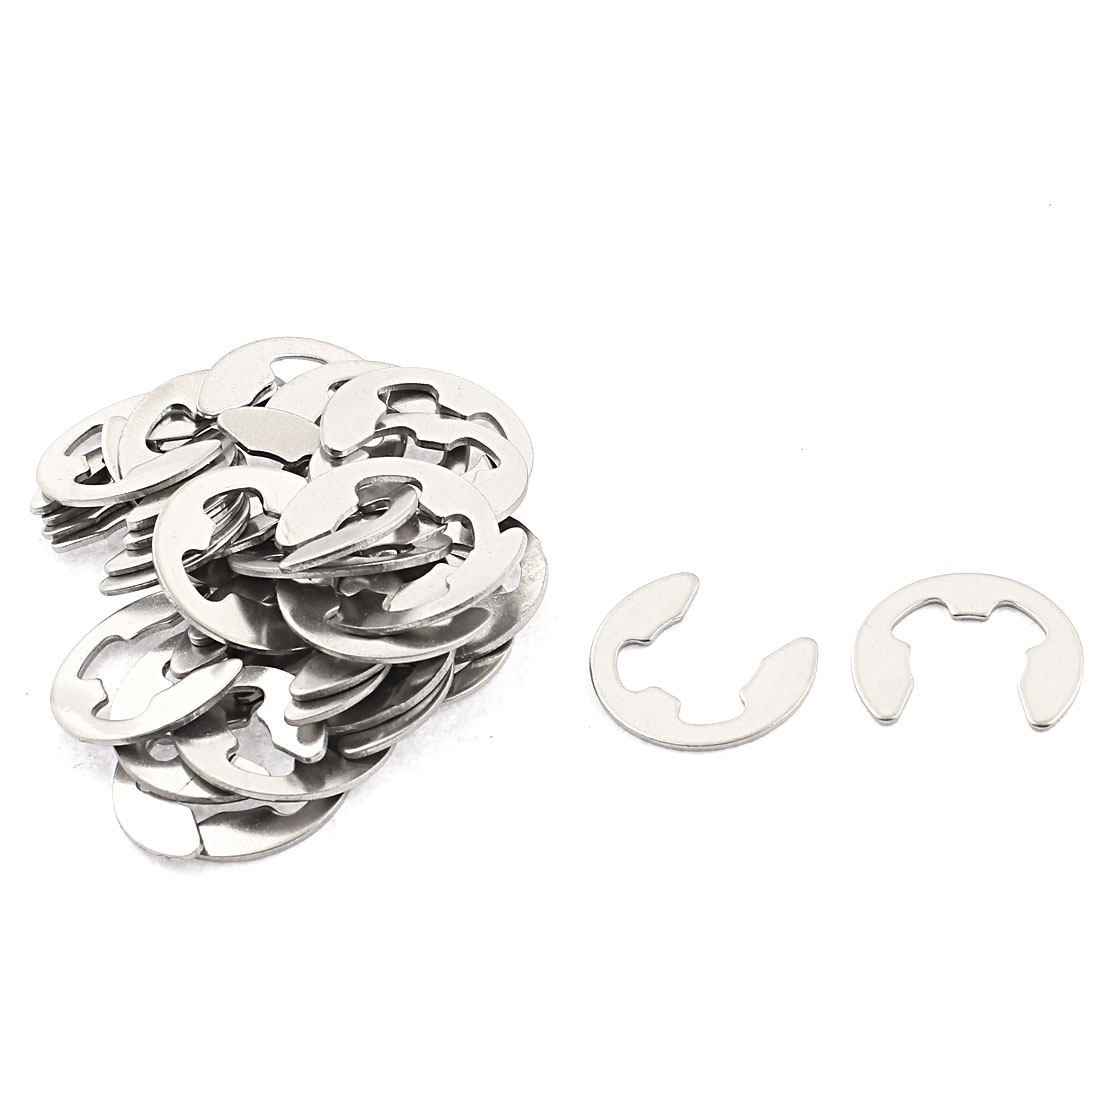 12mm Stainless Steel Retaining Ring Fastener E-Clip Circlip Silver Tone 32pcs